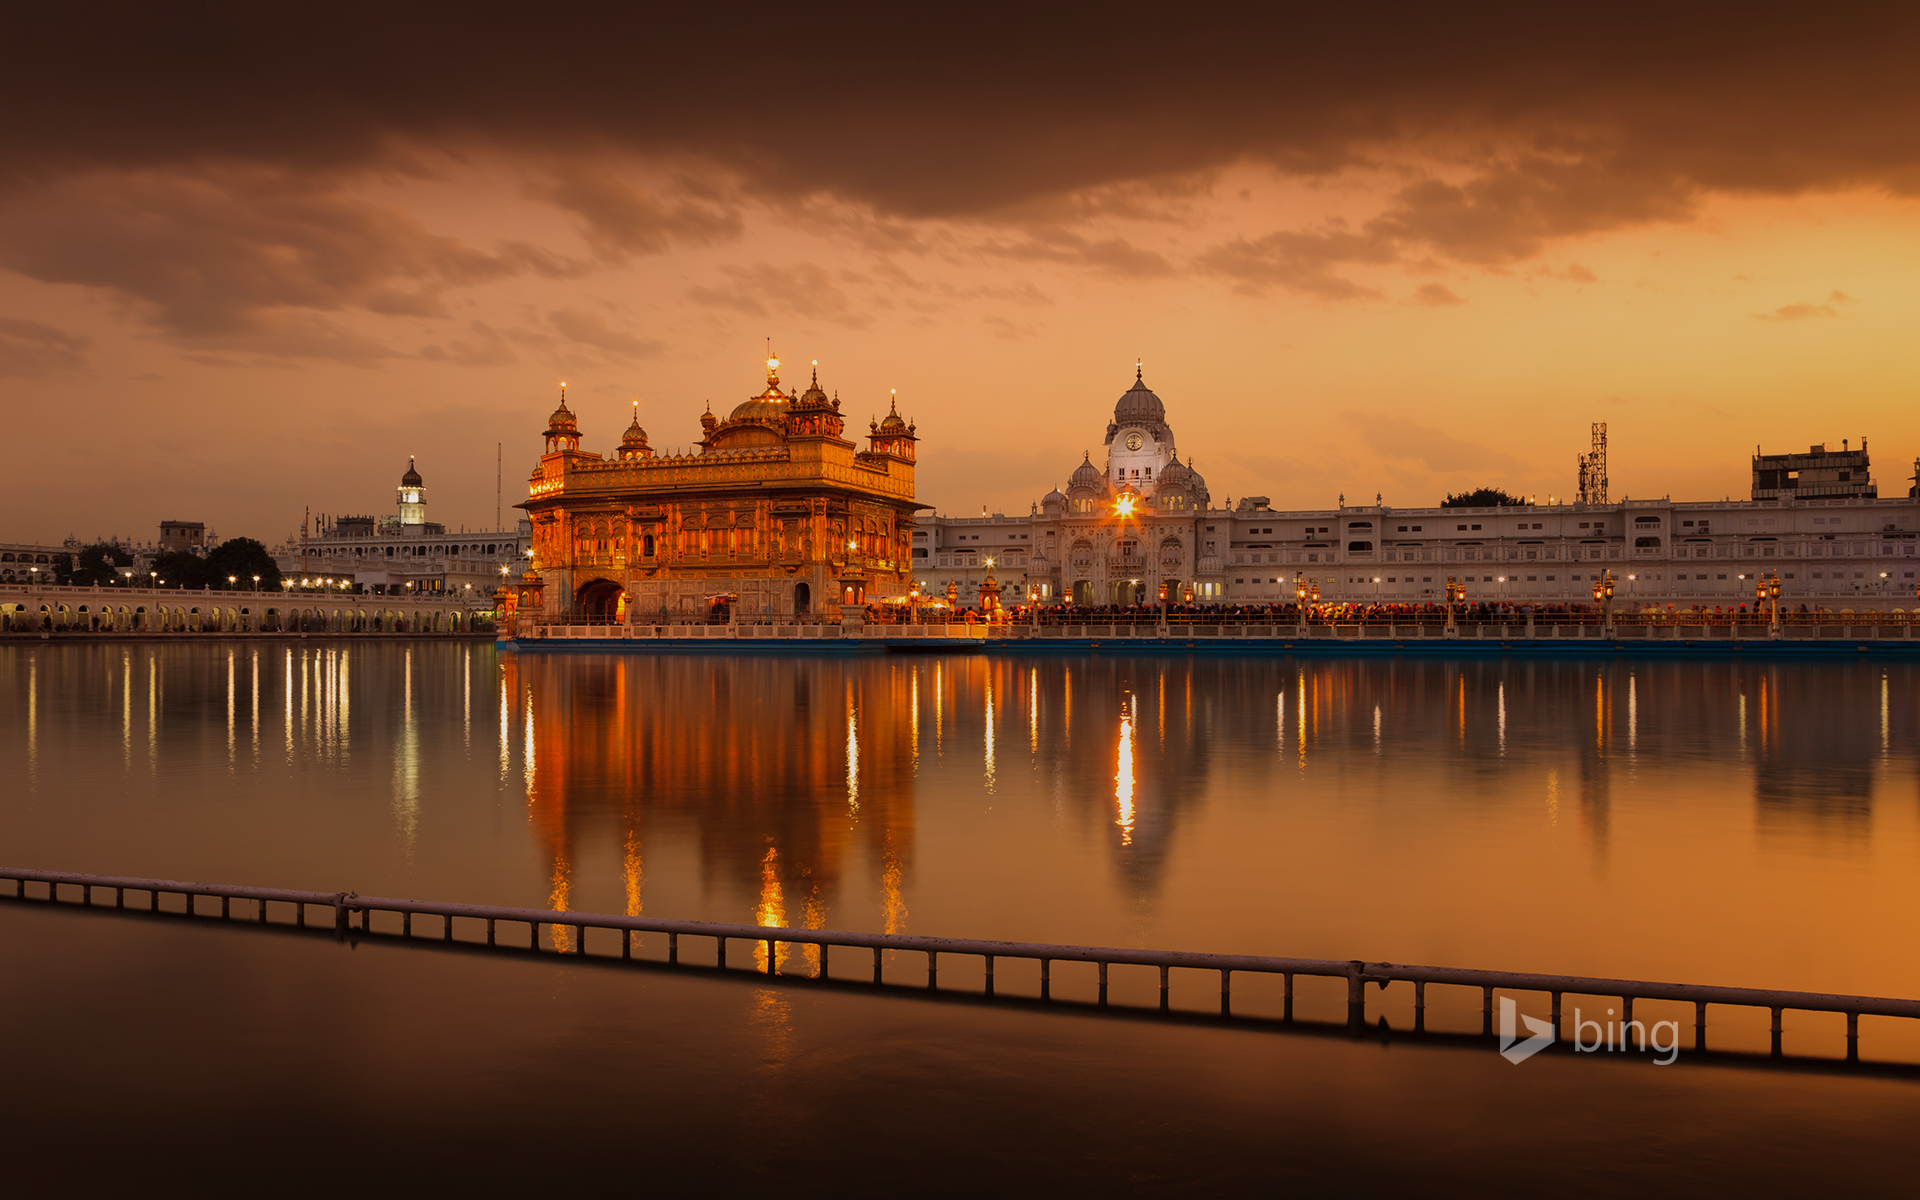 The Golden Temple in Punjab, India